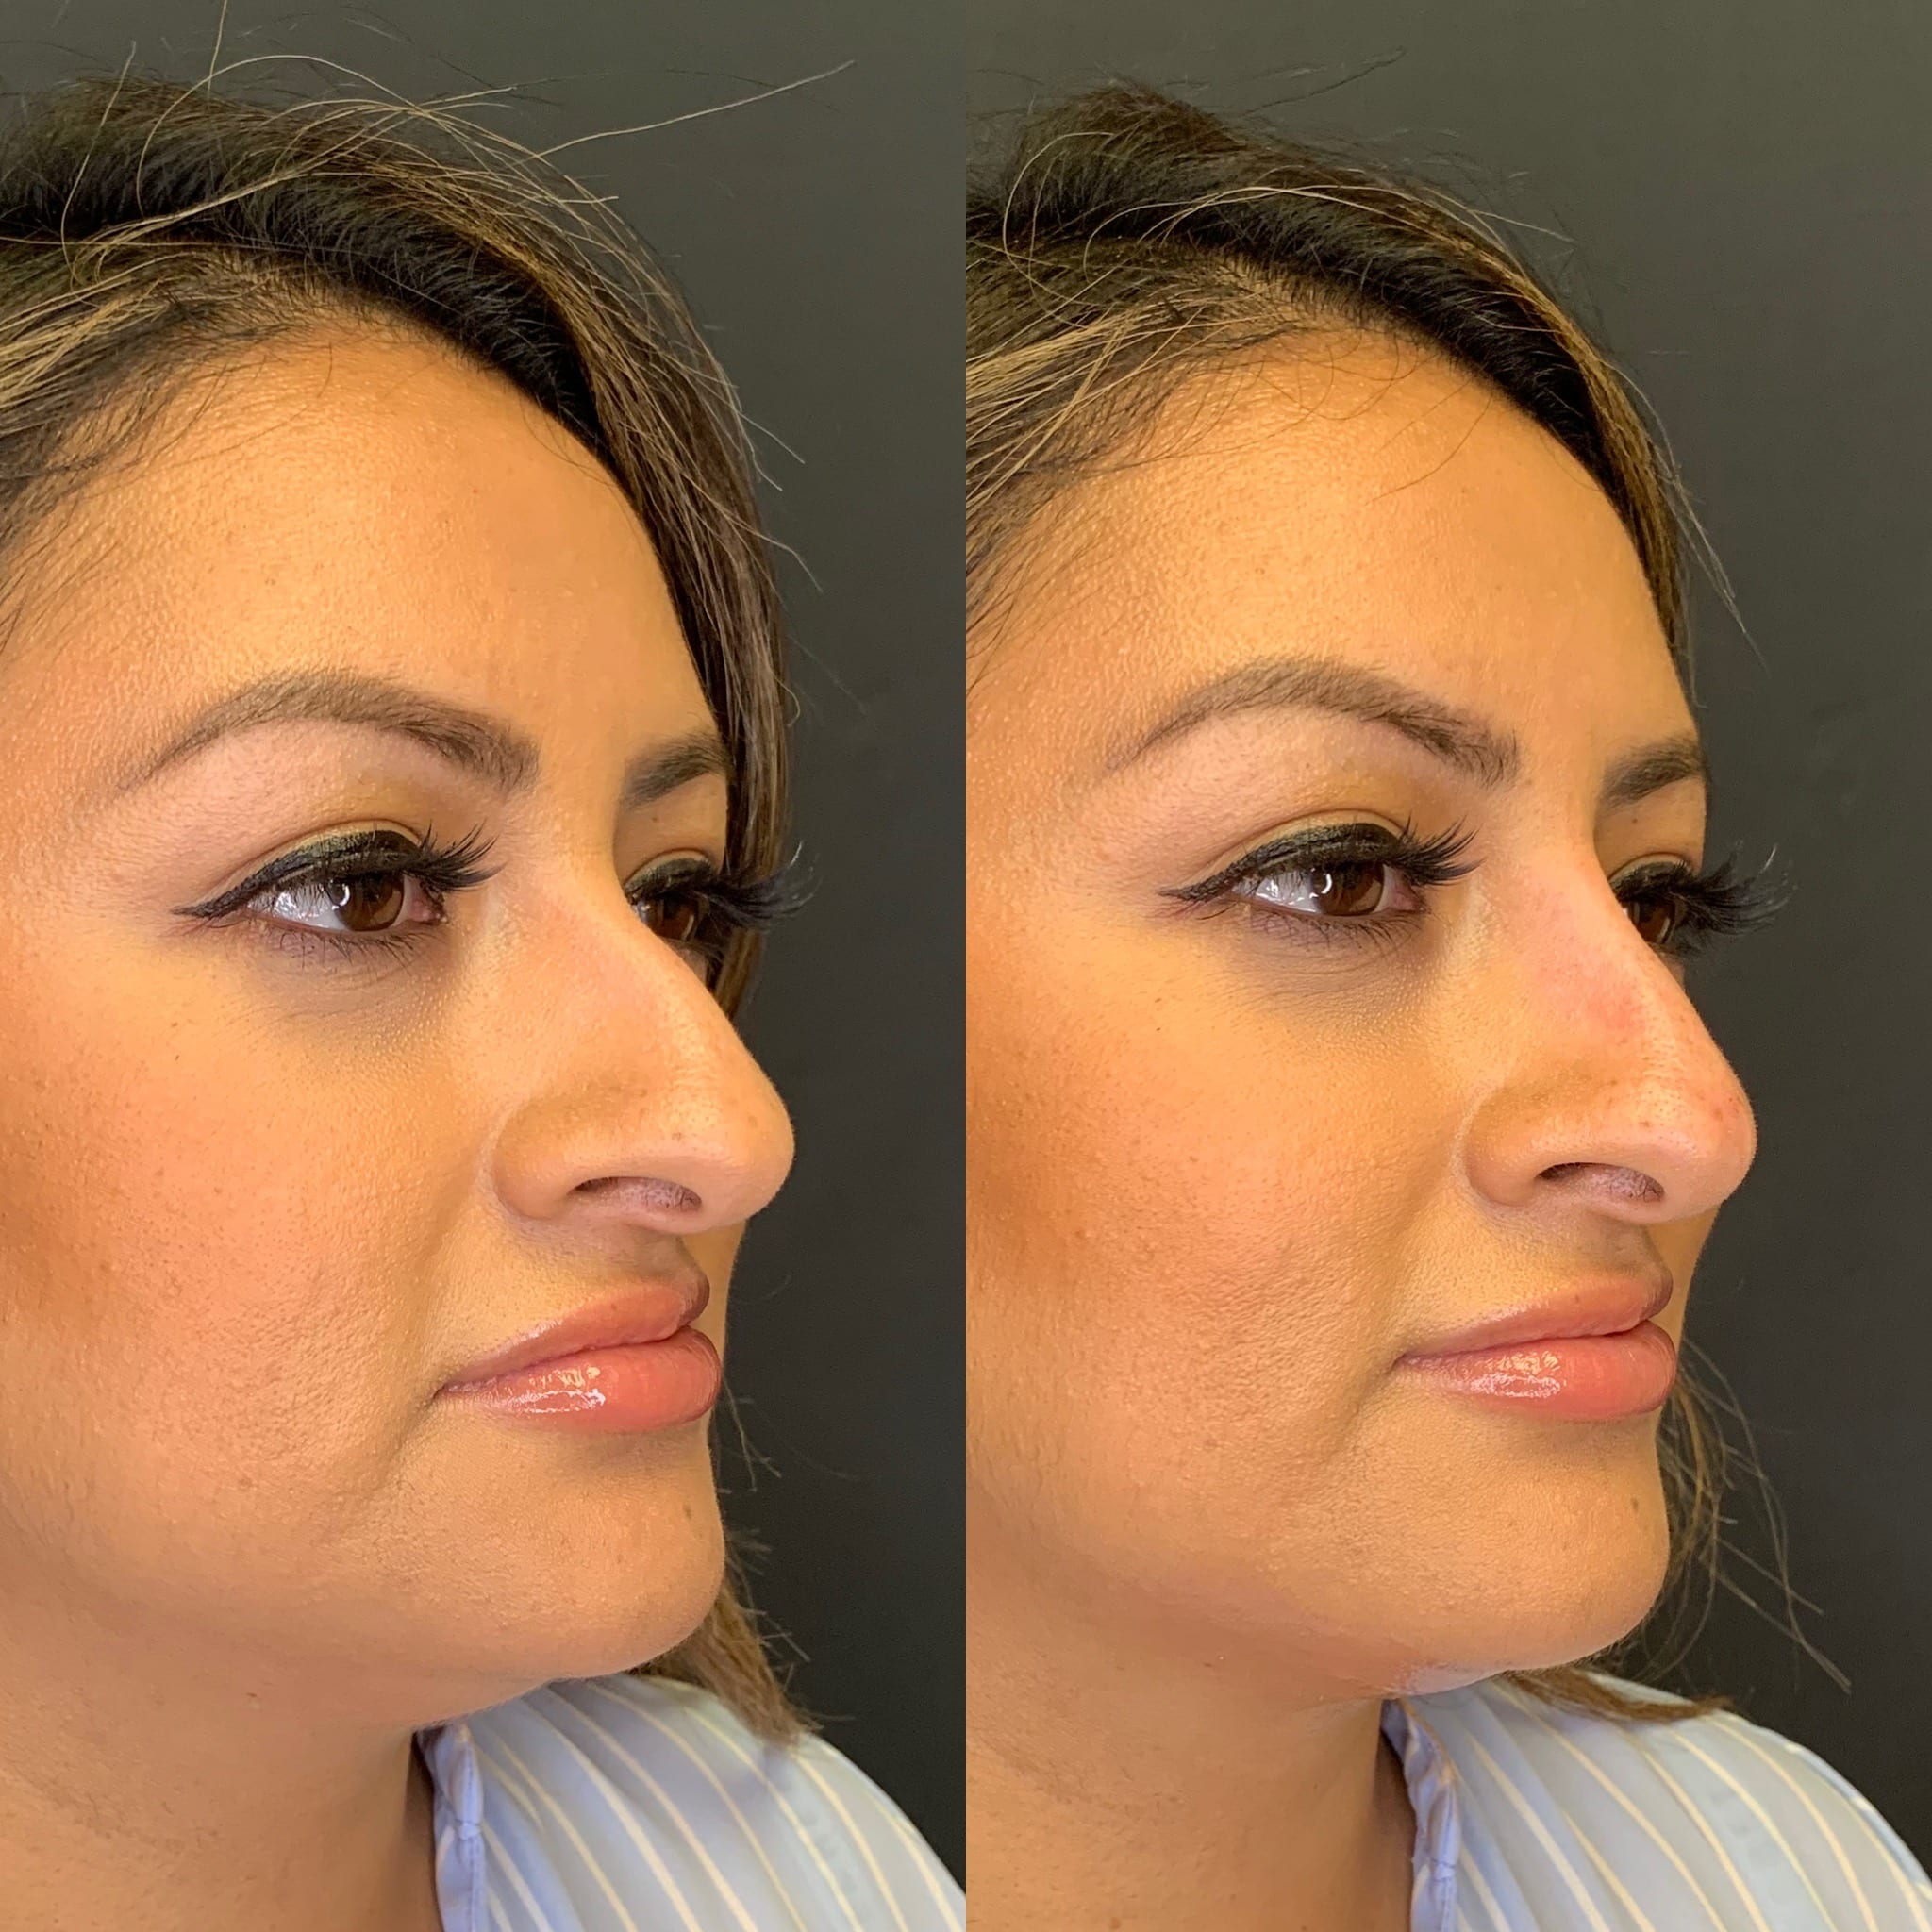 30 y/o Hispanic F immediately after injecting voluma above her nasal hump to improve her side profile.